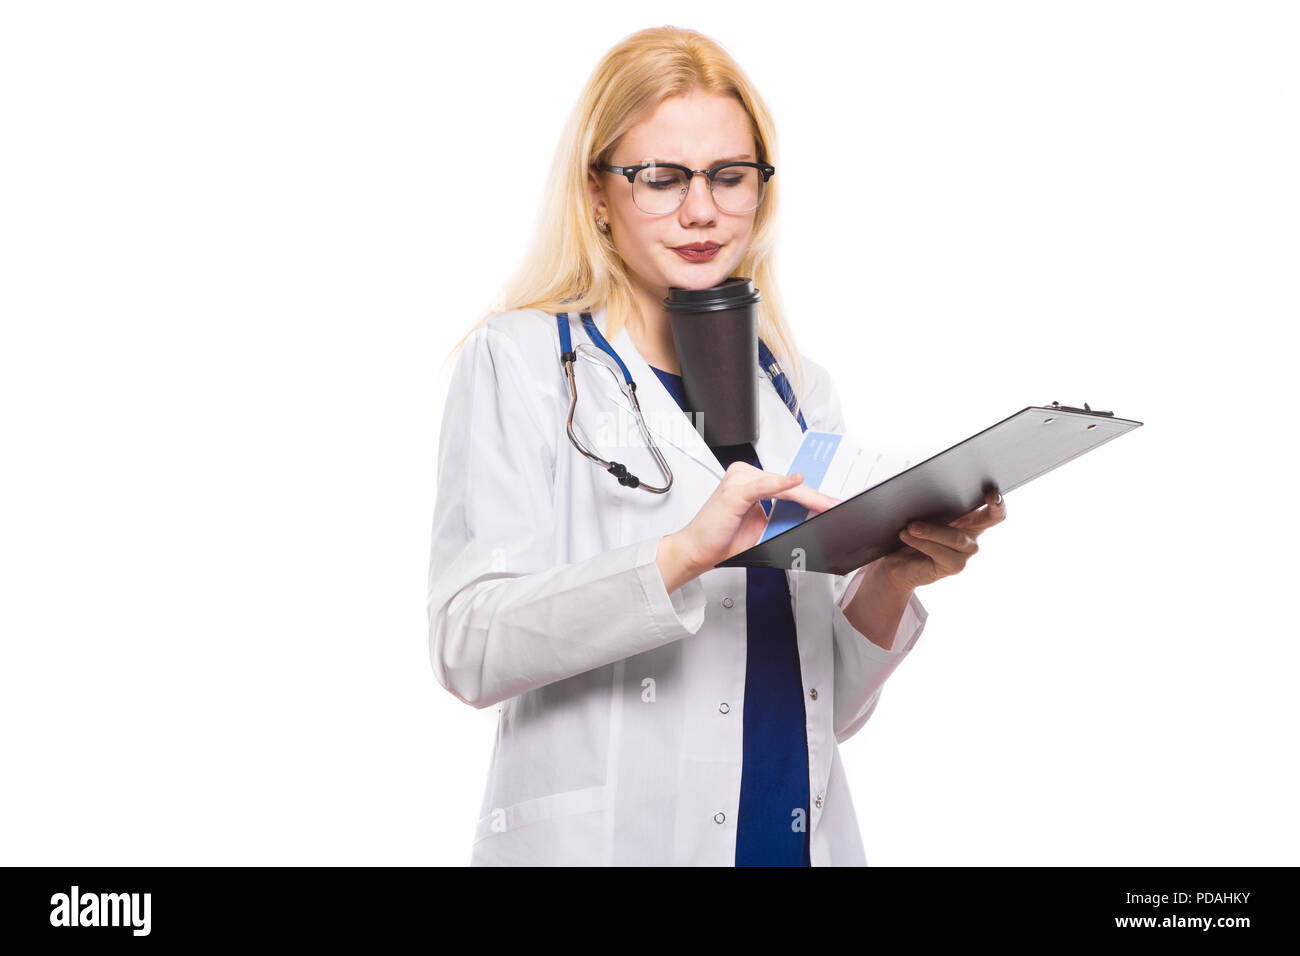 Woman doctor with stethoscope and clipboard - Stock Image